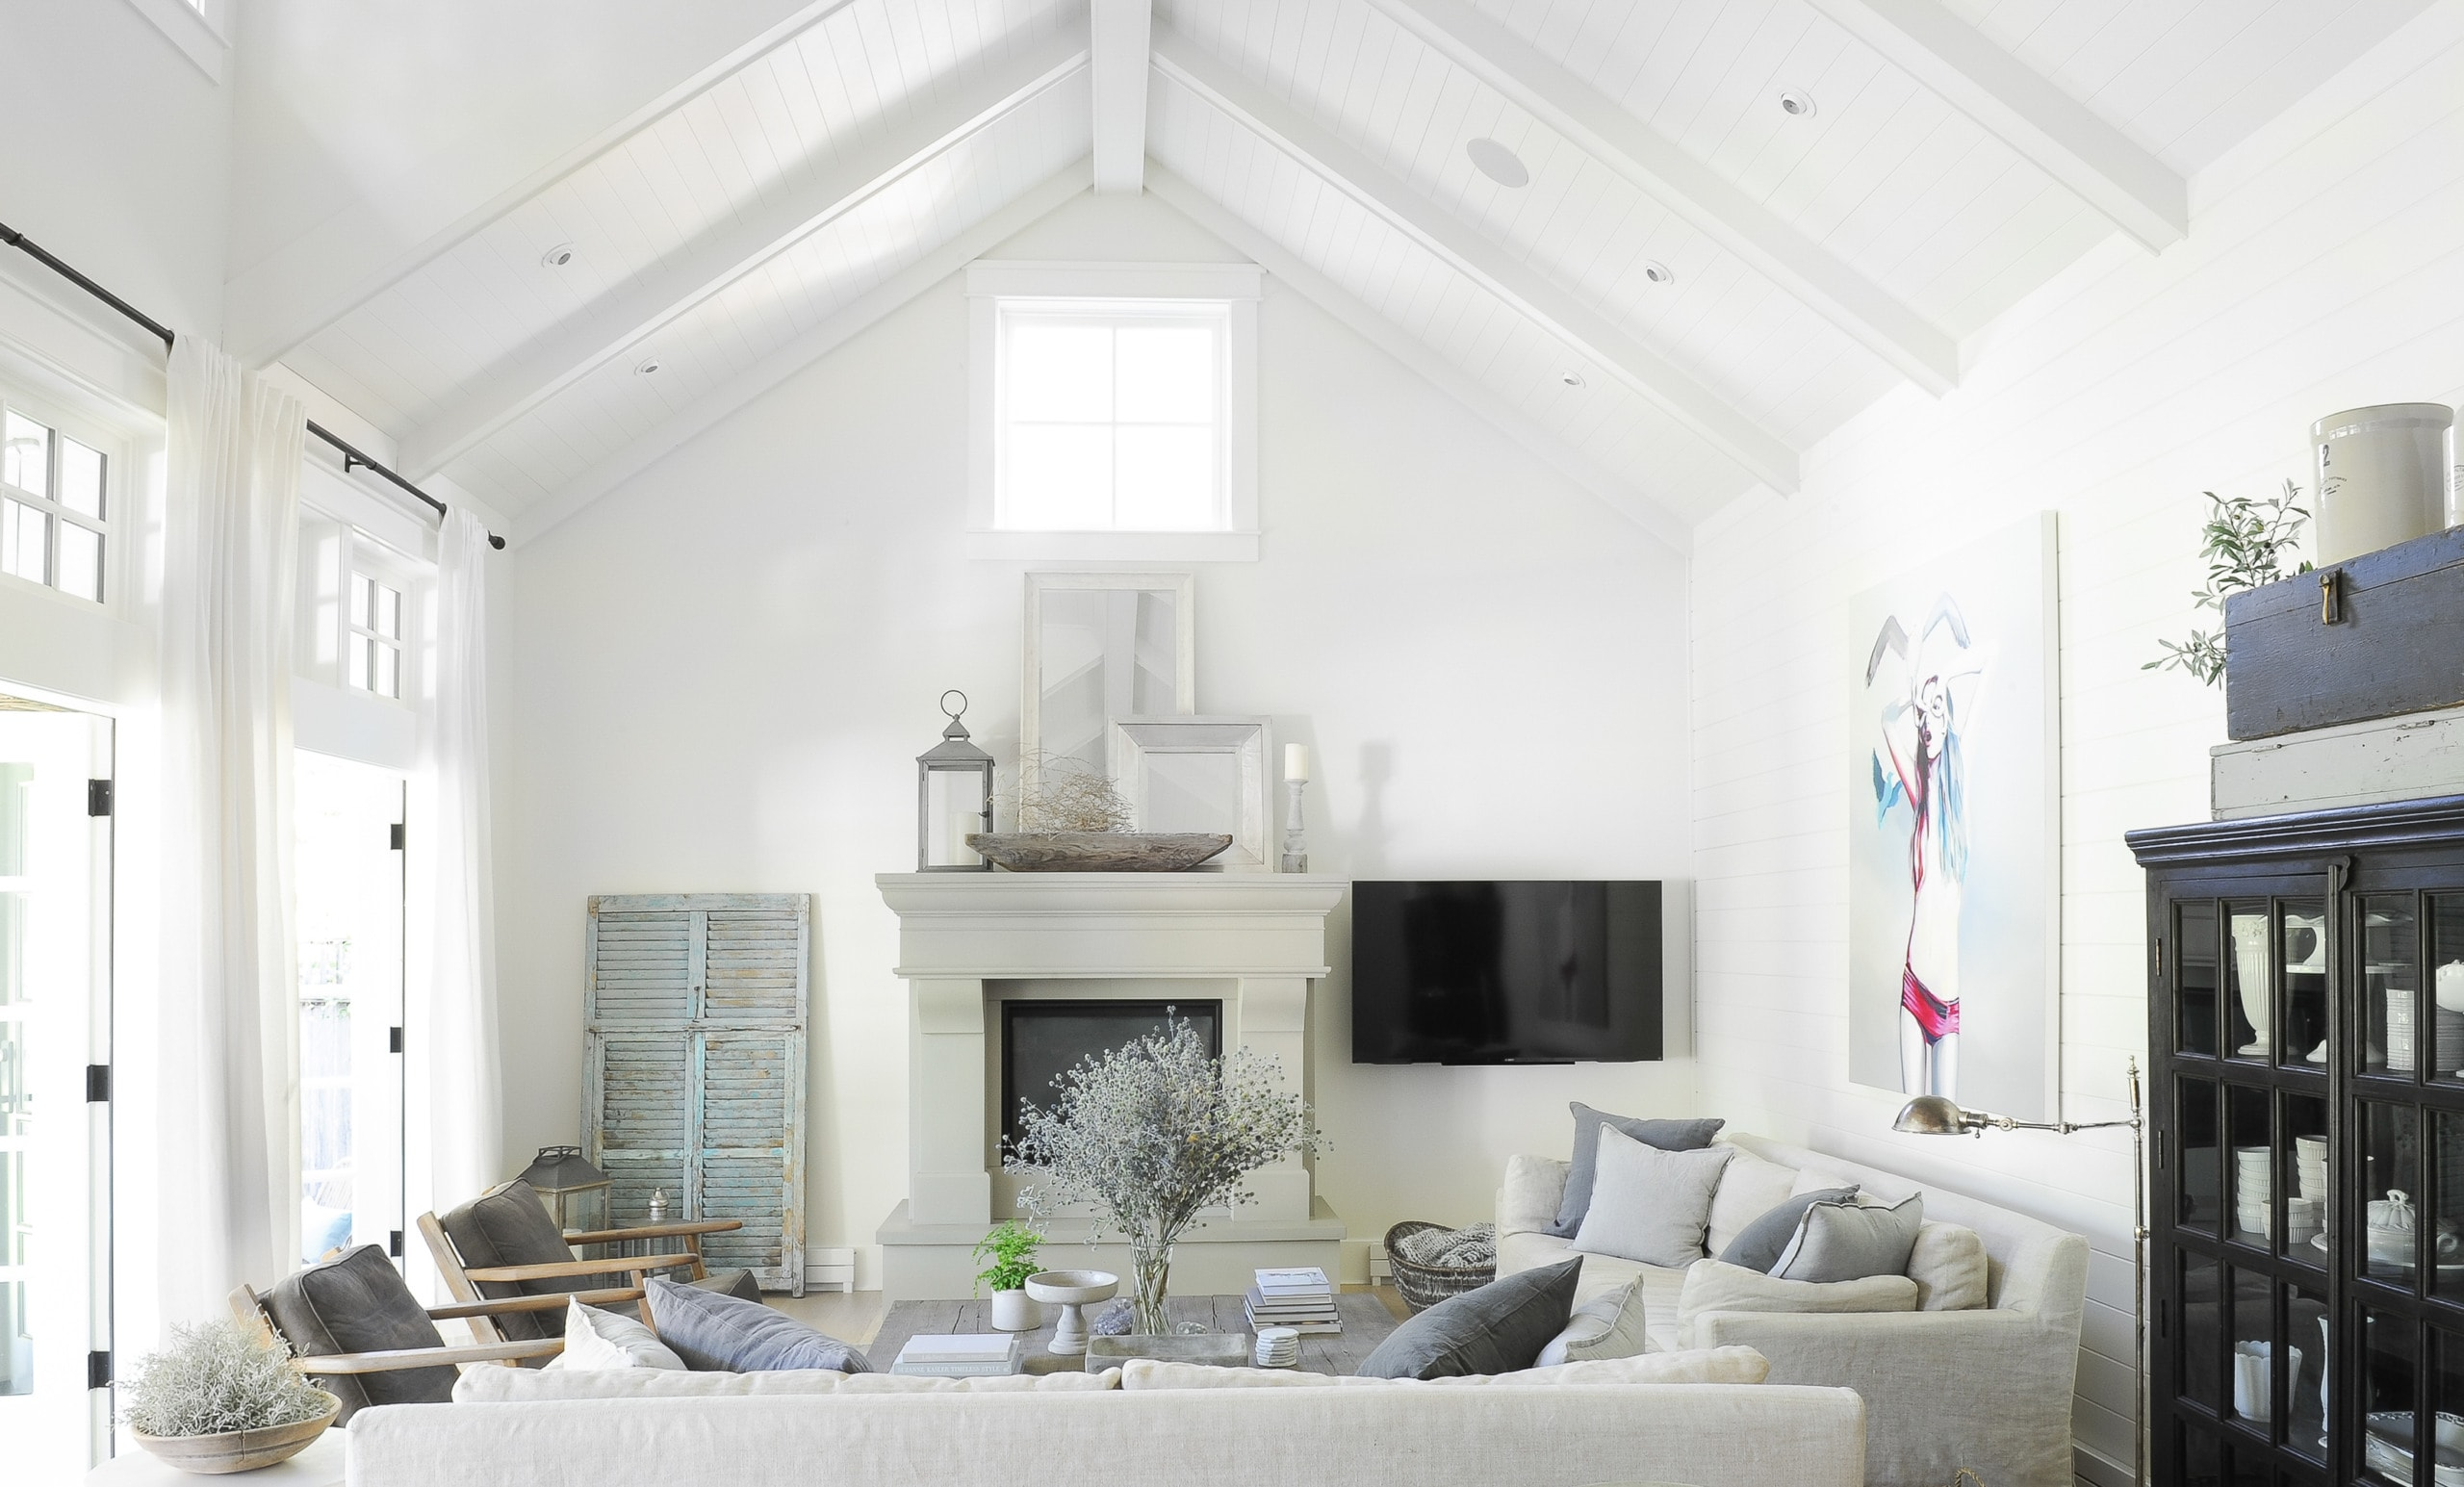 Vaulted ceilings in a living room